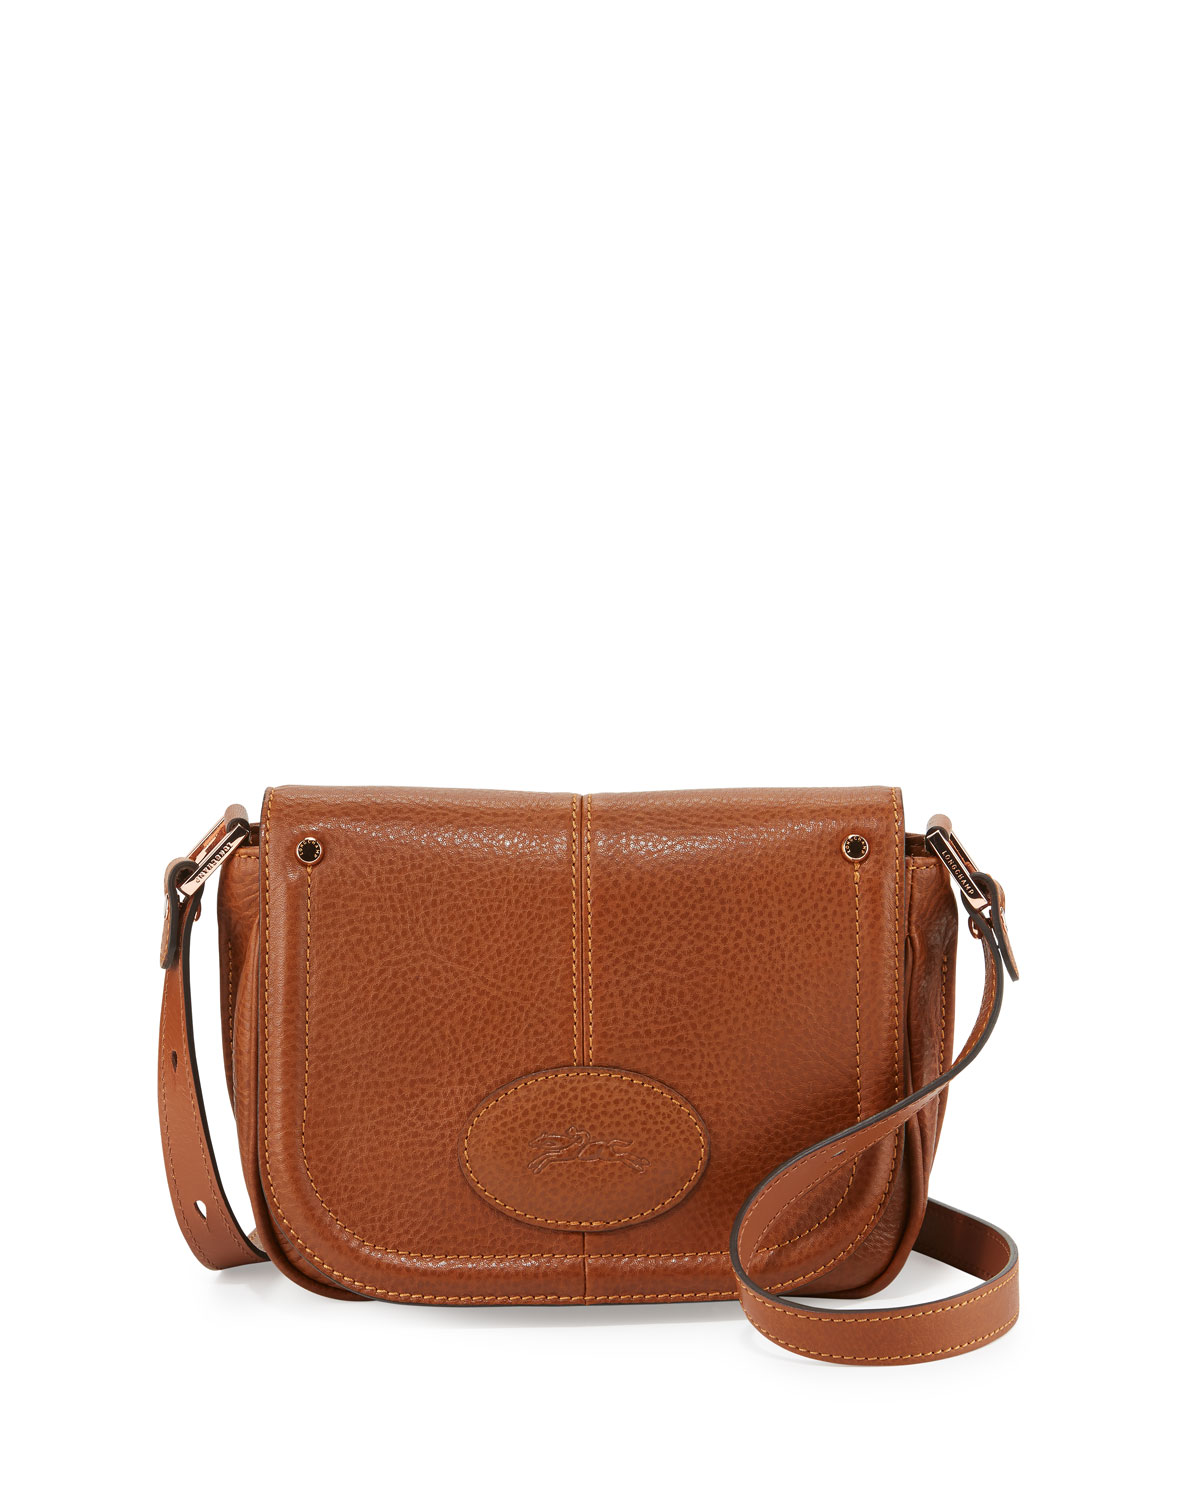 1b4db457f Longchamp Mystery Small Leather Crossbody Bag | Neiman Marcus